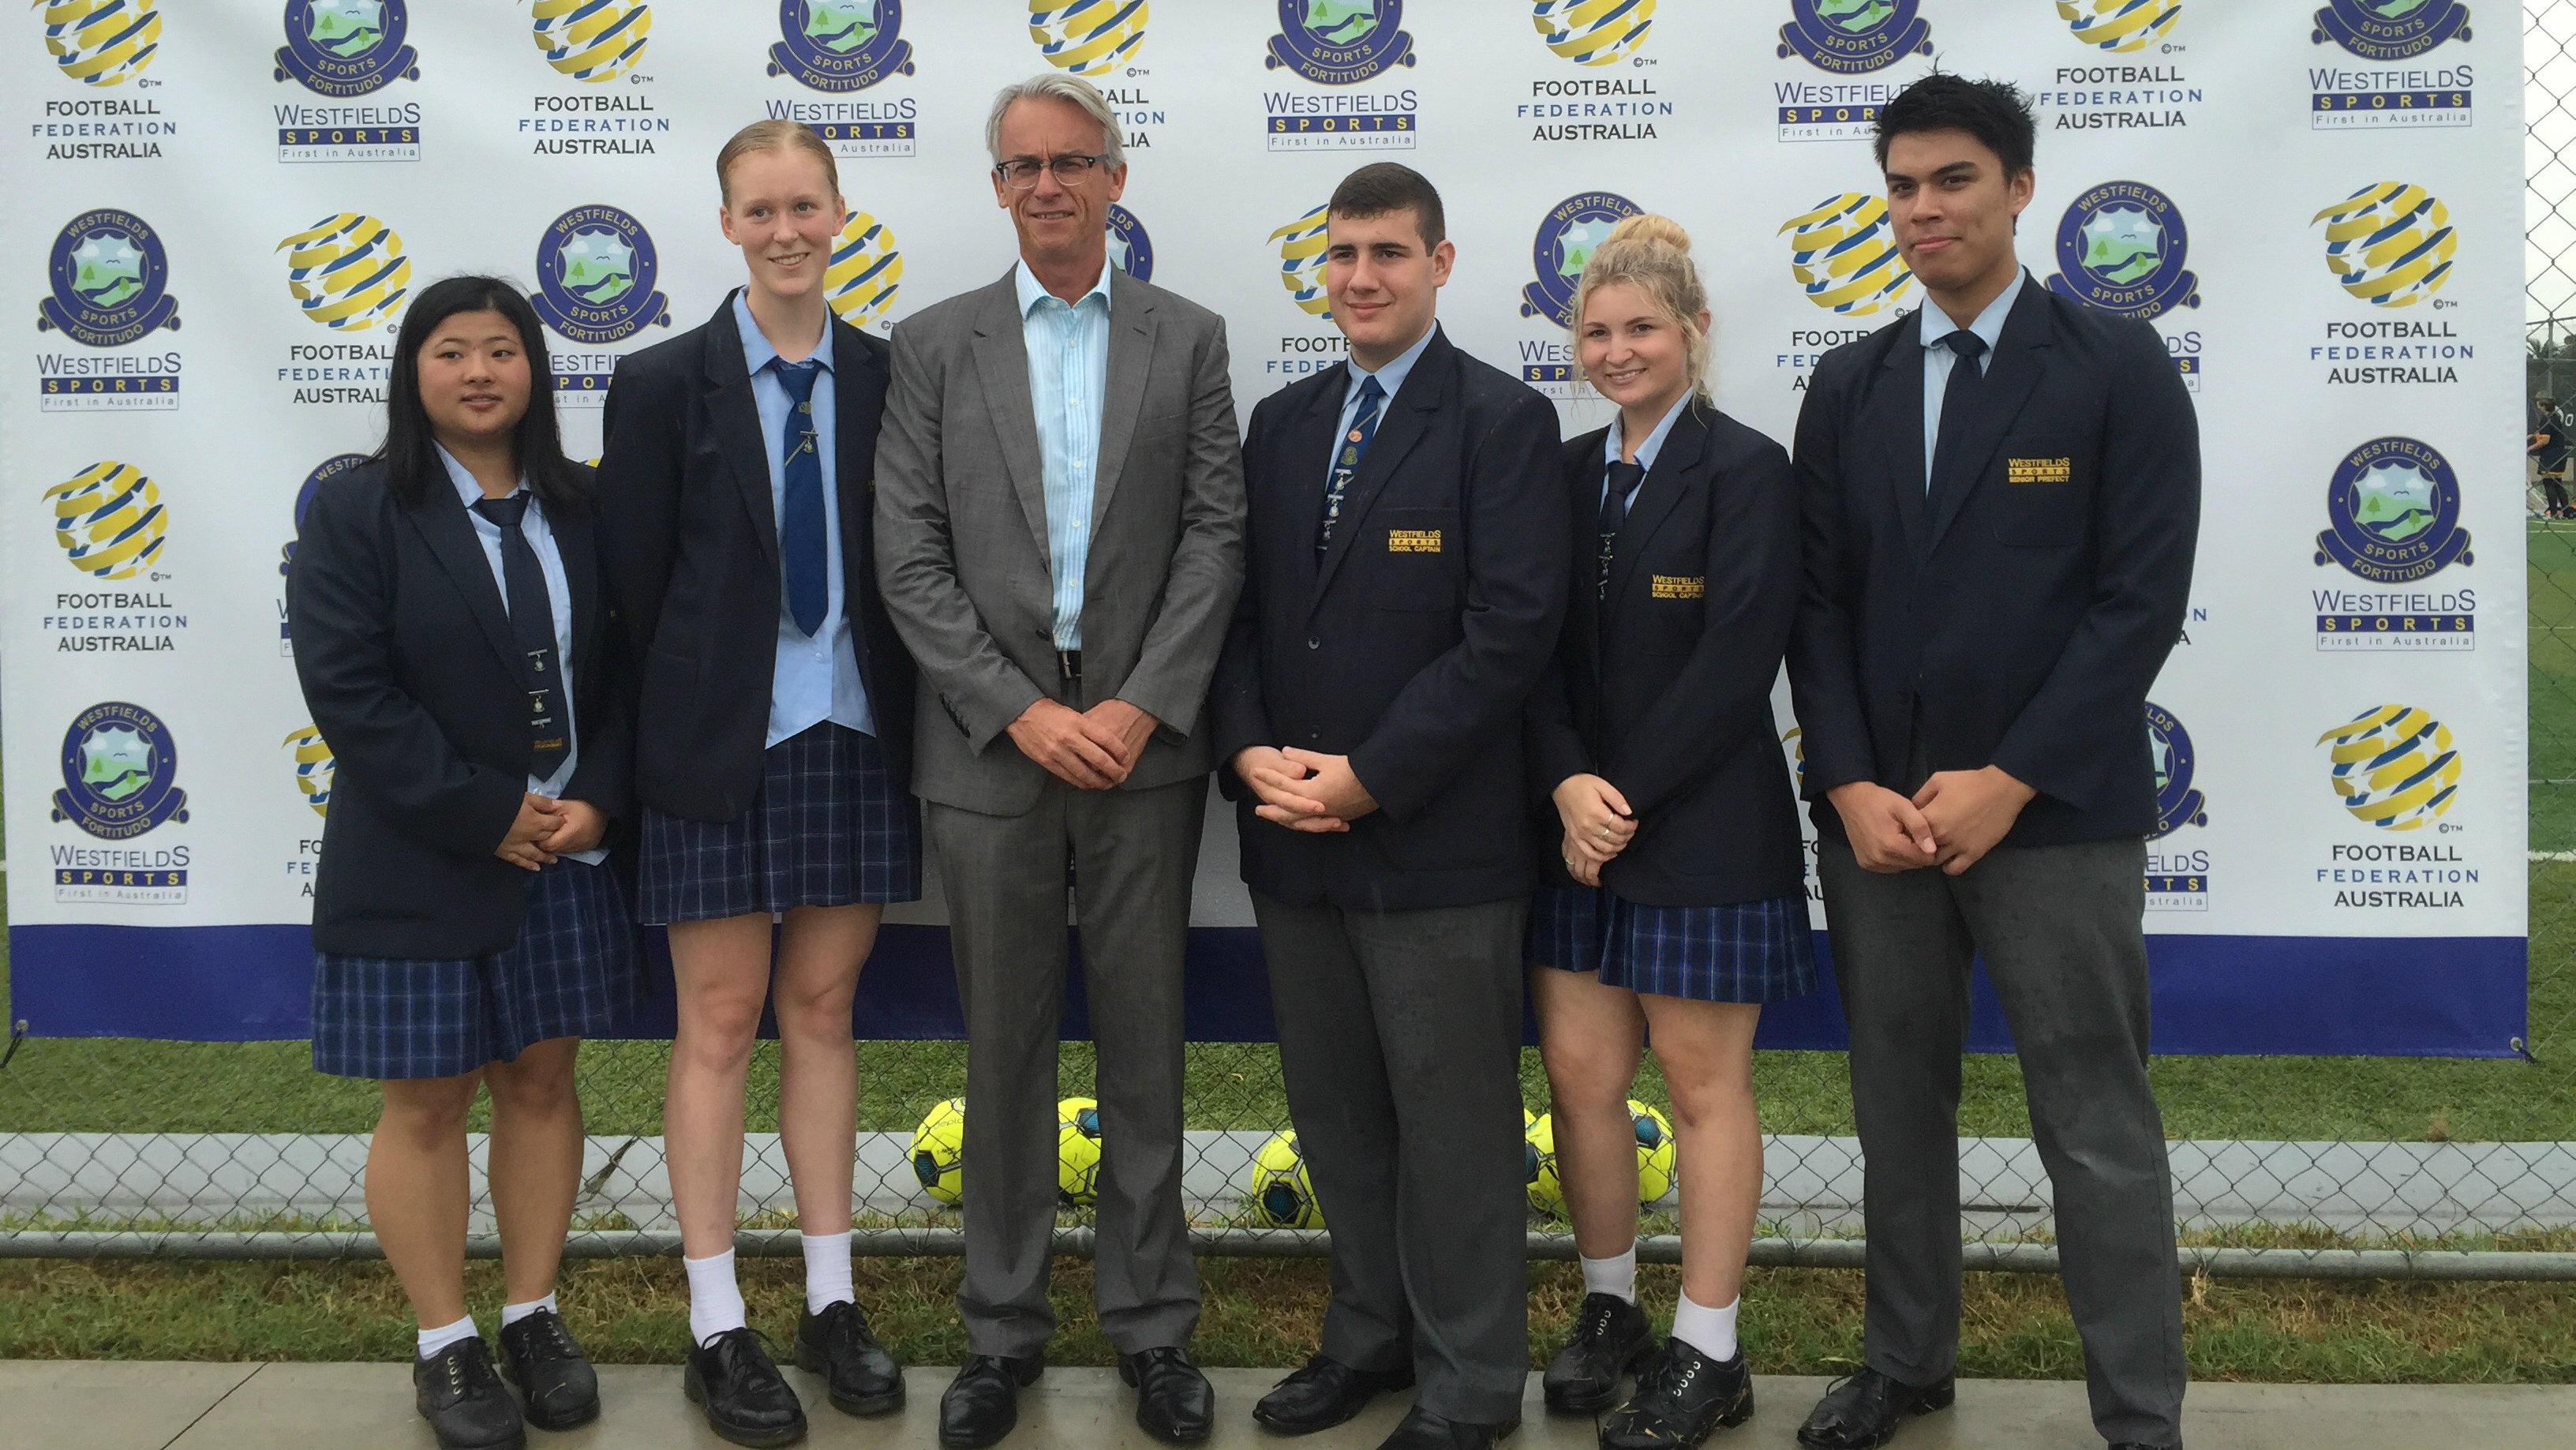 David Gallop at Westfield Sports High.